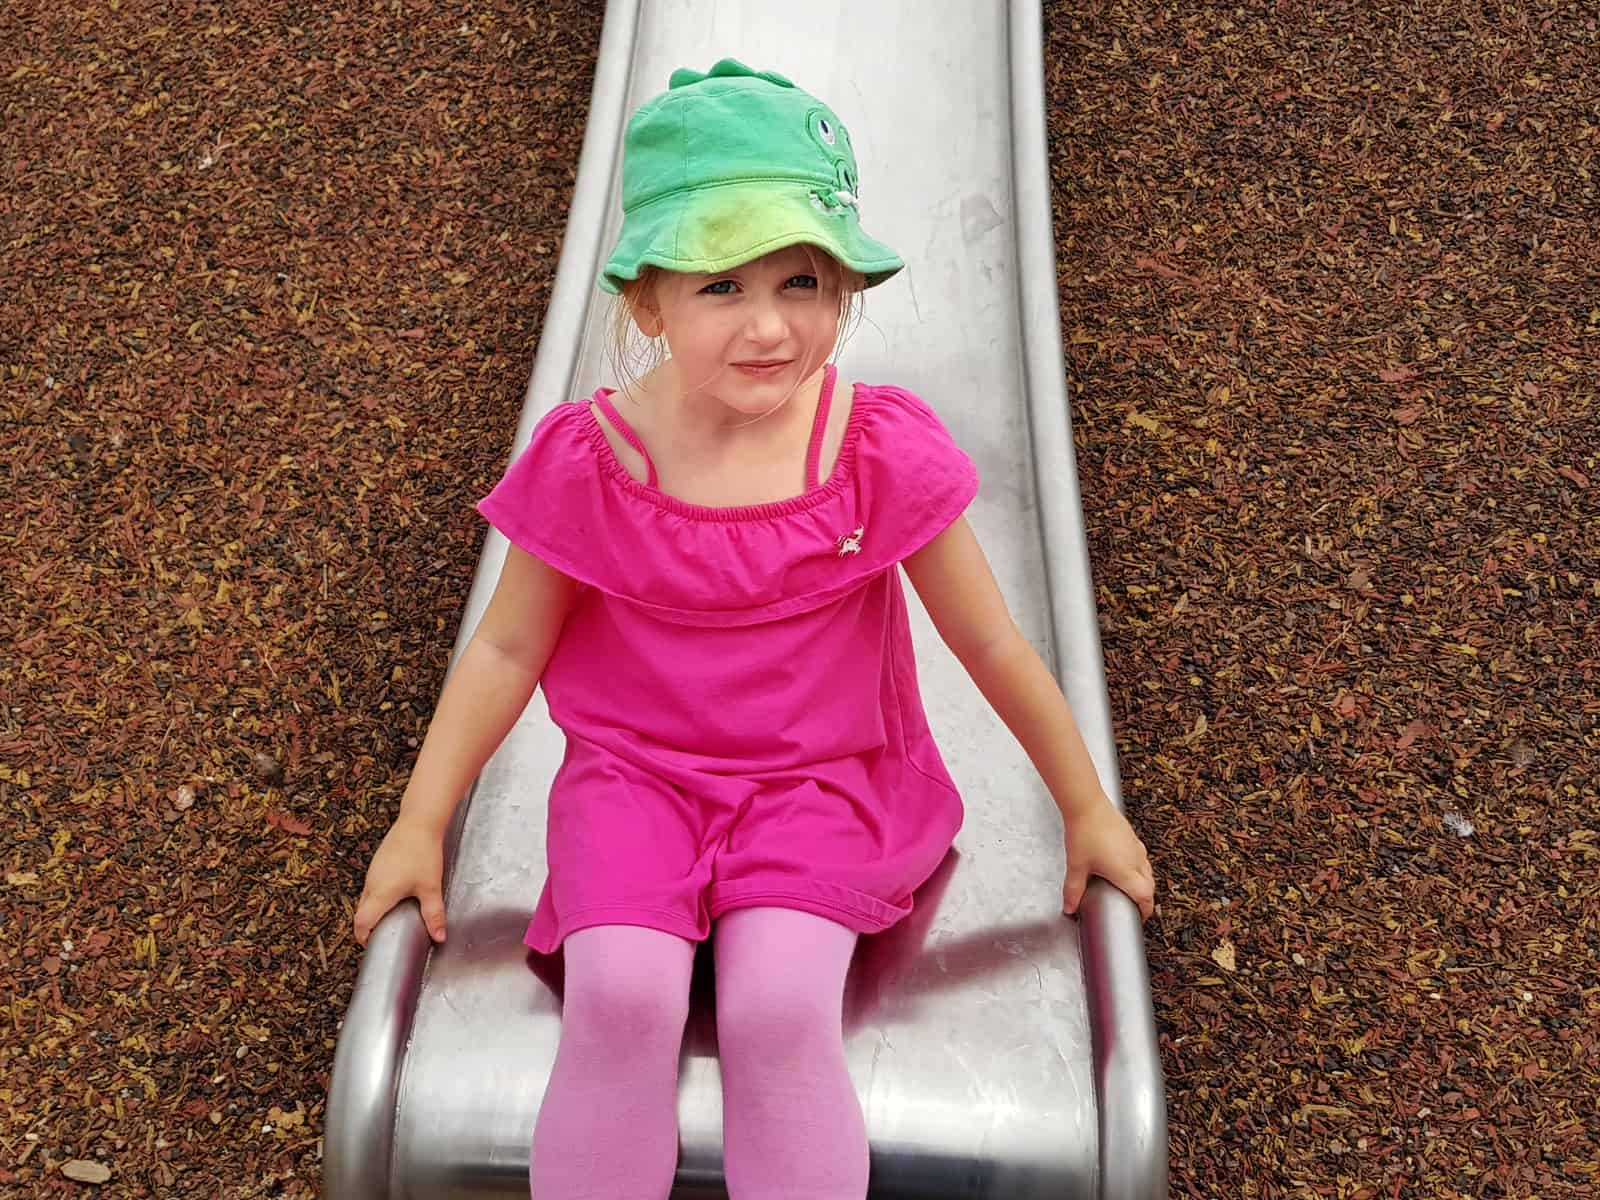 WWT Slimbridge, Gloucestershire - little girl on metal slide